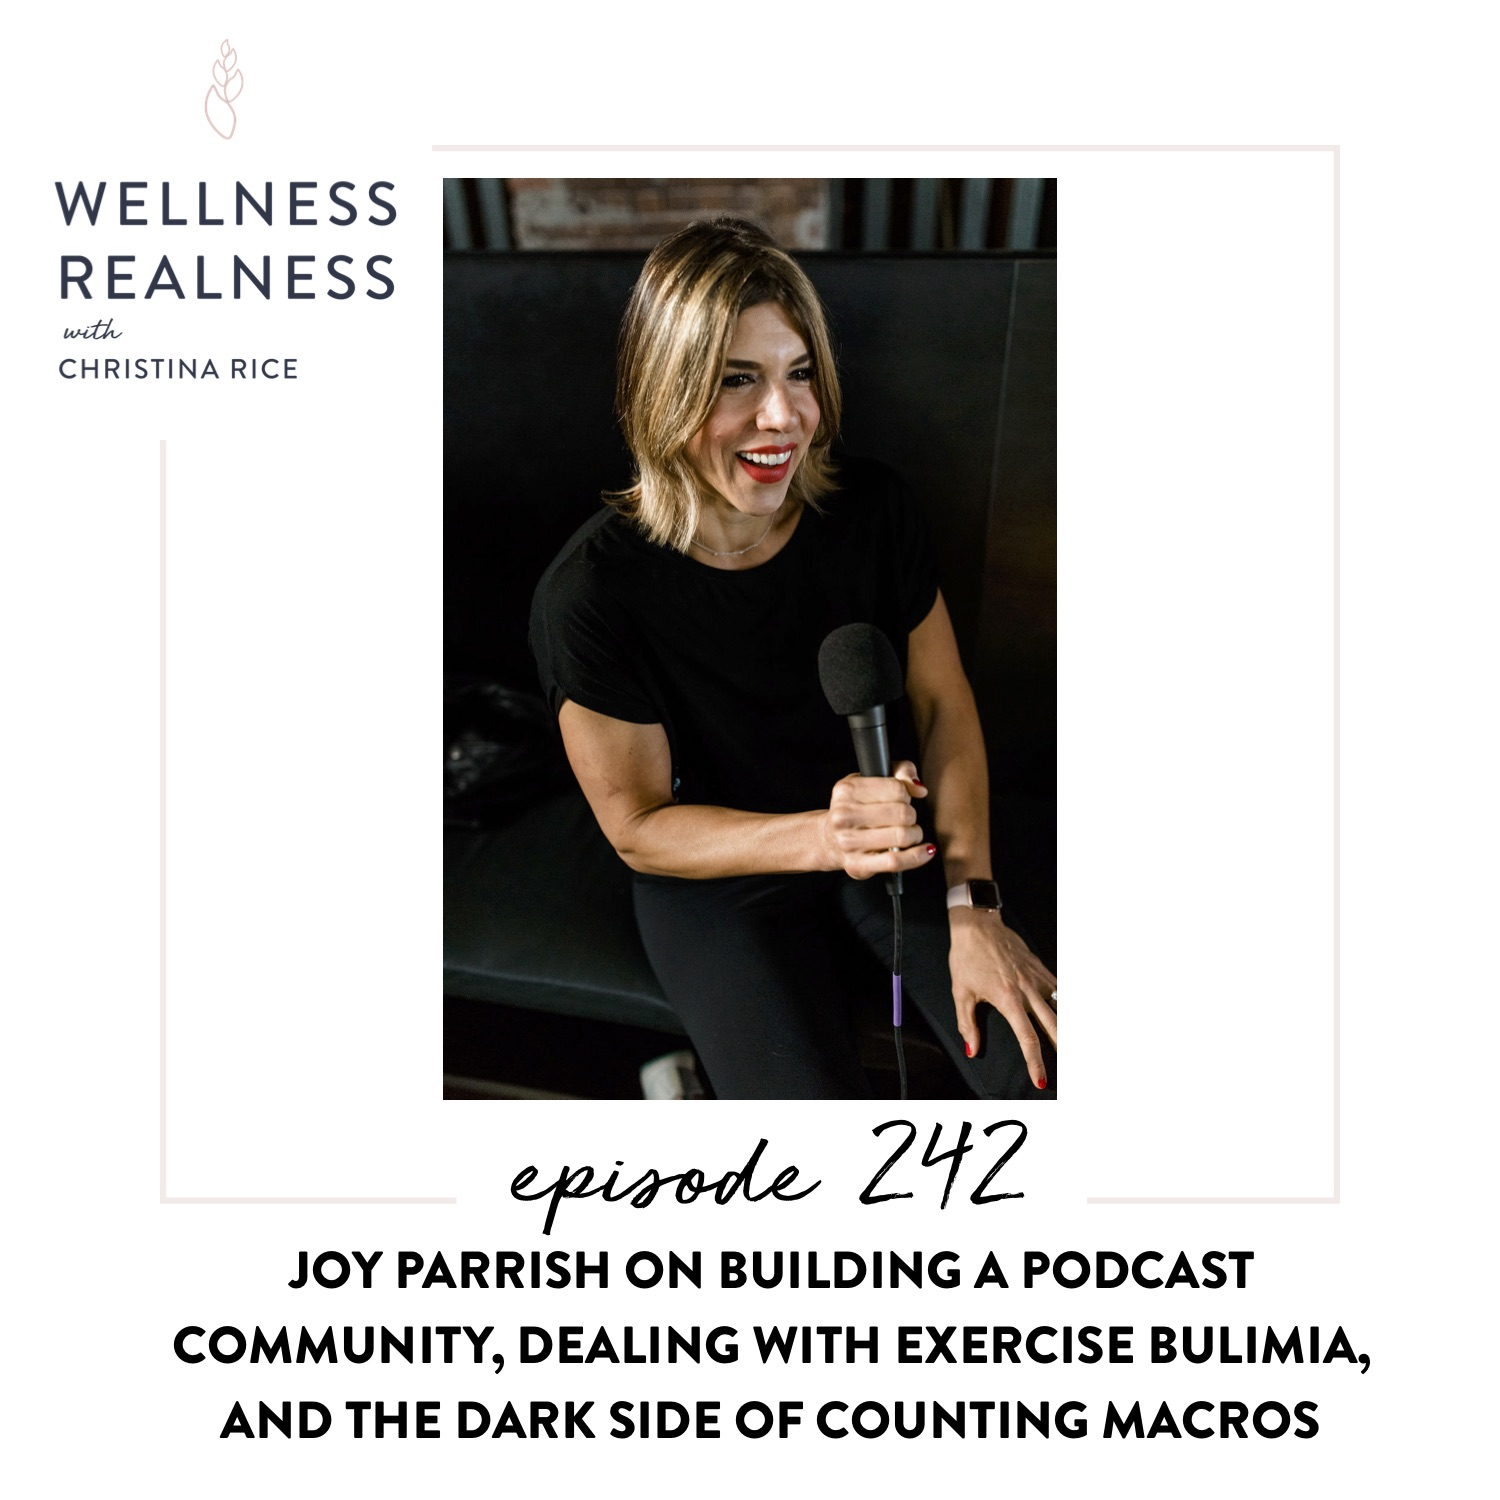 242: Joy Parrish on Building a Podcast Community, Dealing with Exercise Bulimia, and the Dark Side of Counting Macros